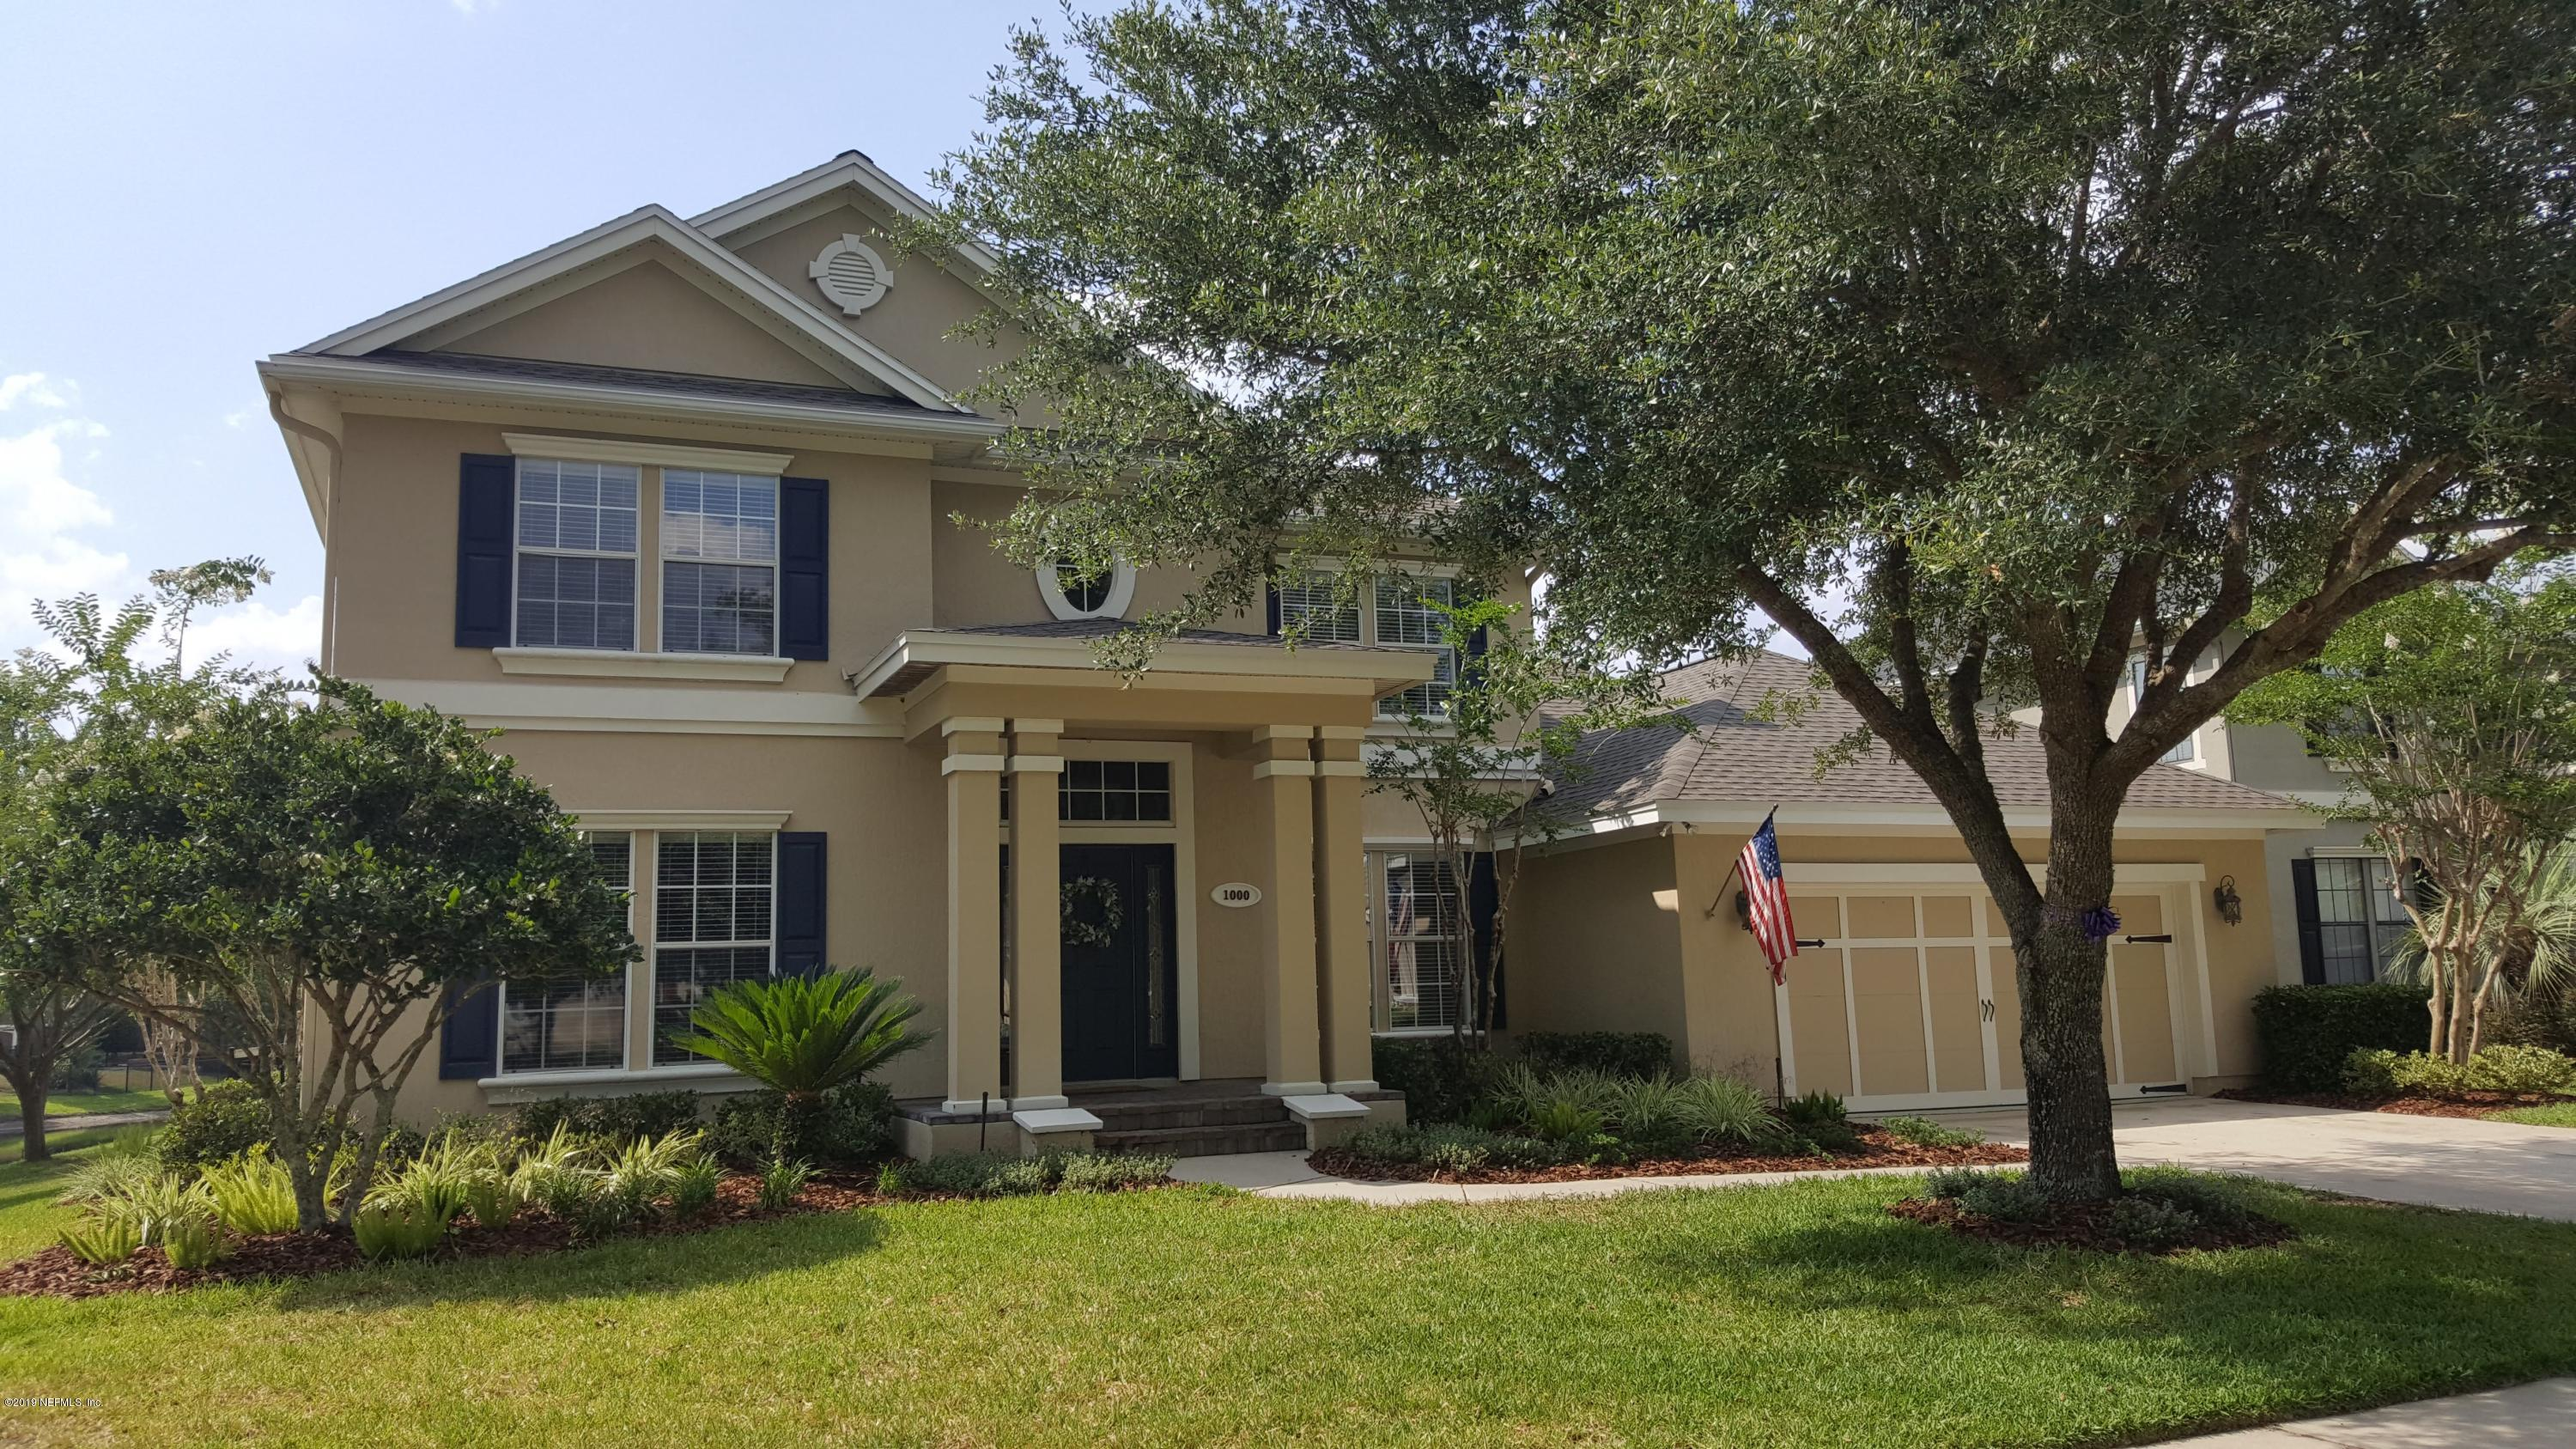 1000 EAGLE POINT, ST AUGUSTINE, FLORIDA 32092, 5 Bedrooms Bedrooms, ,3 BathroomsBathrooms,Residential - single family,For sale,EAGLE POINT,998255